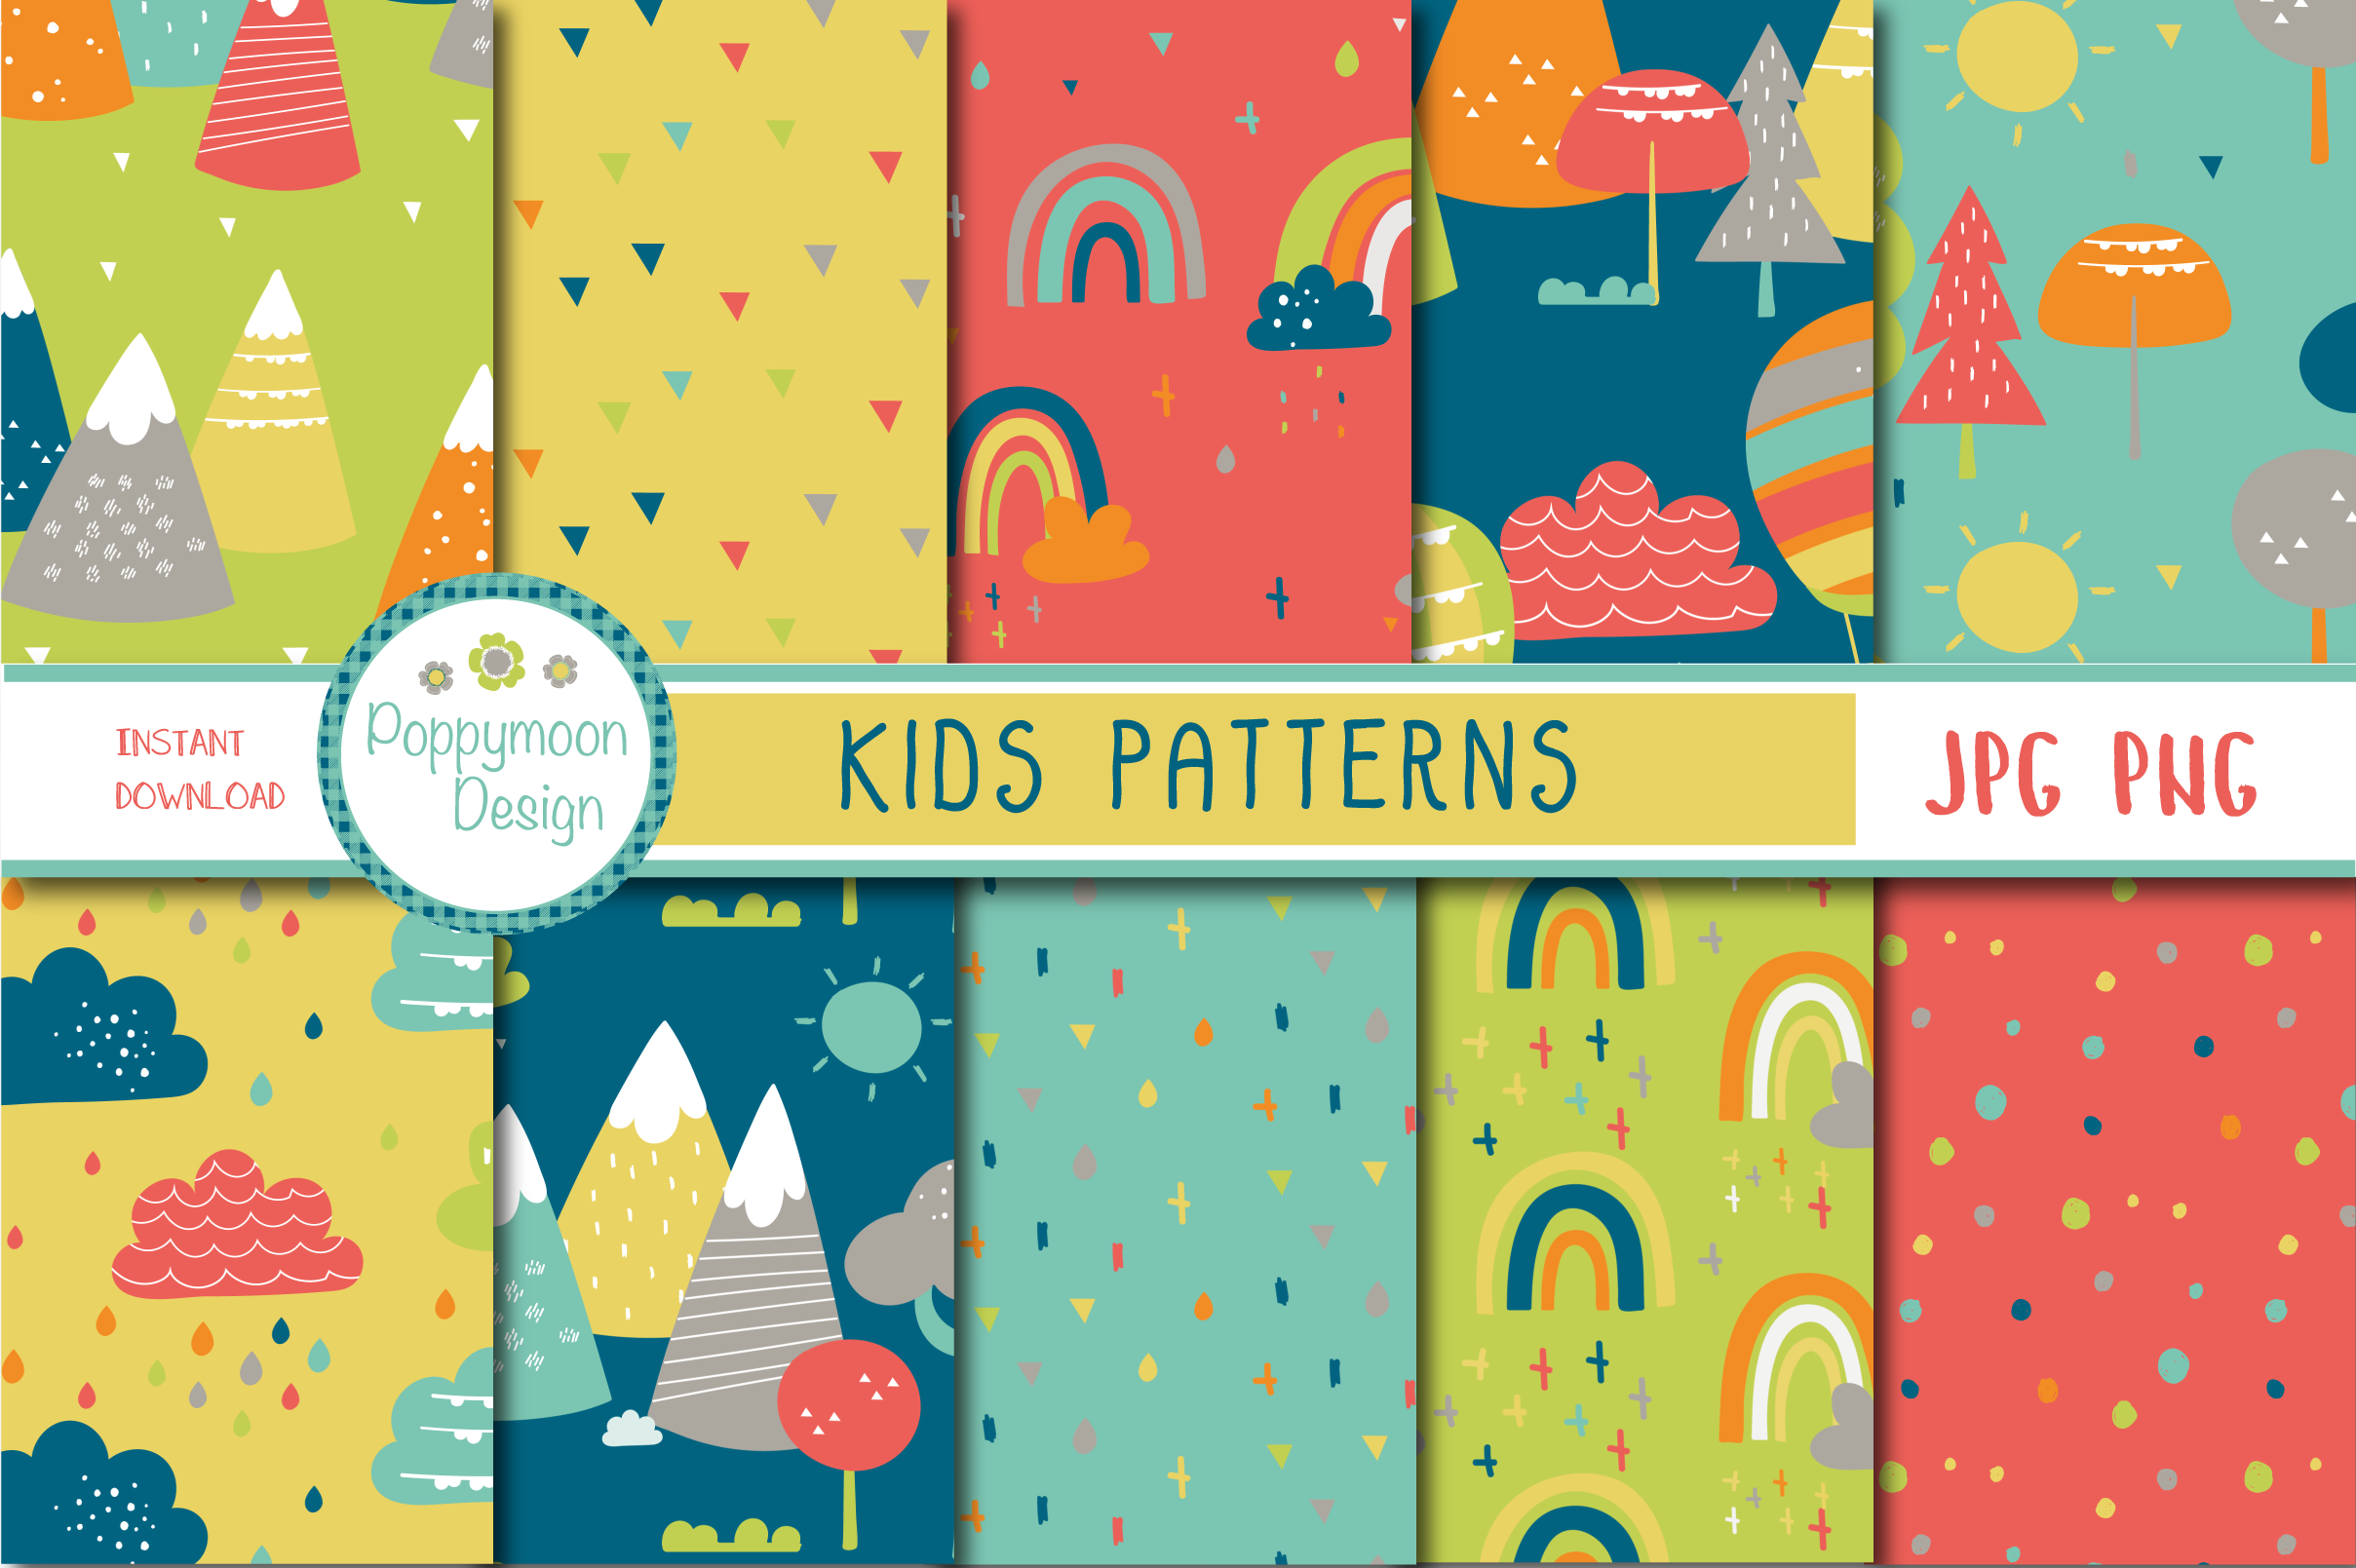 Download Free Kids Patterns Graphic By Poppymoondesign Creative Fabrica for Cricut Explore, Silhouette and other cutting machines.